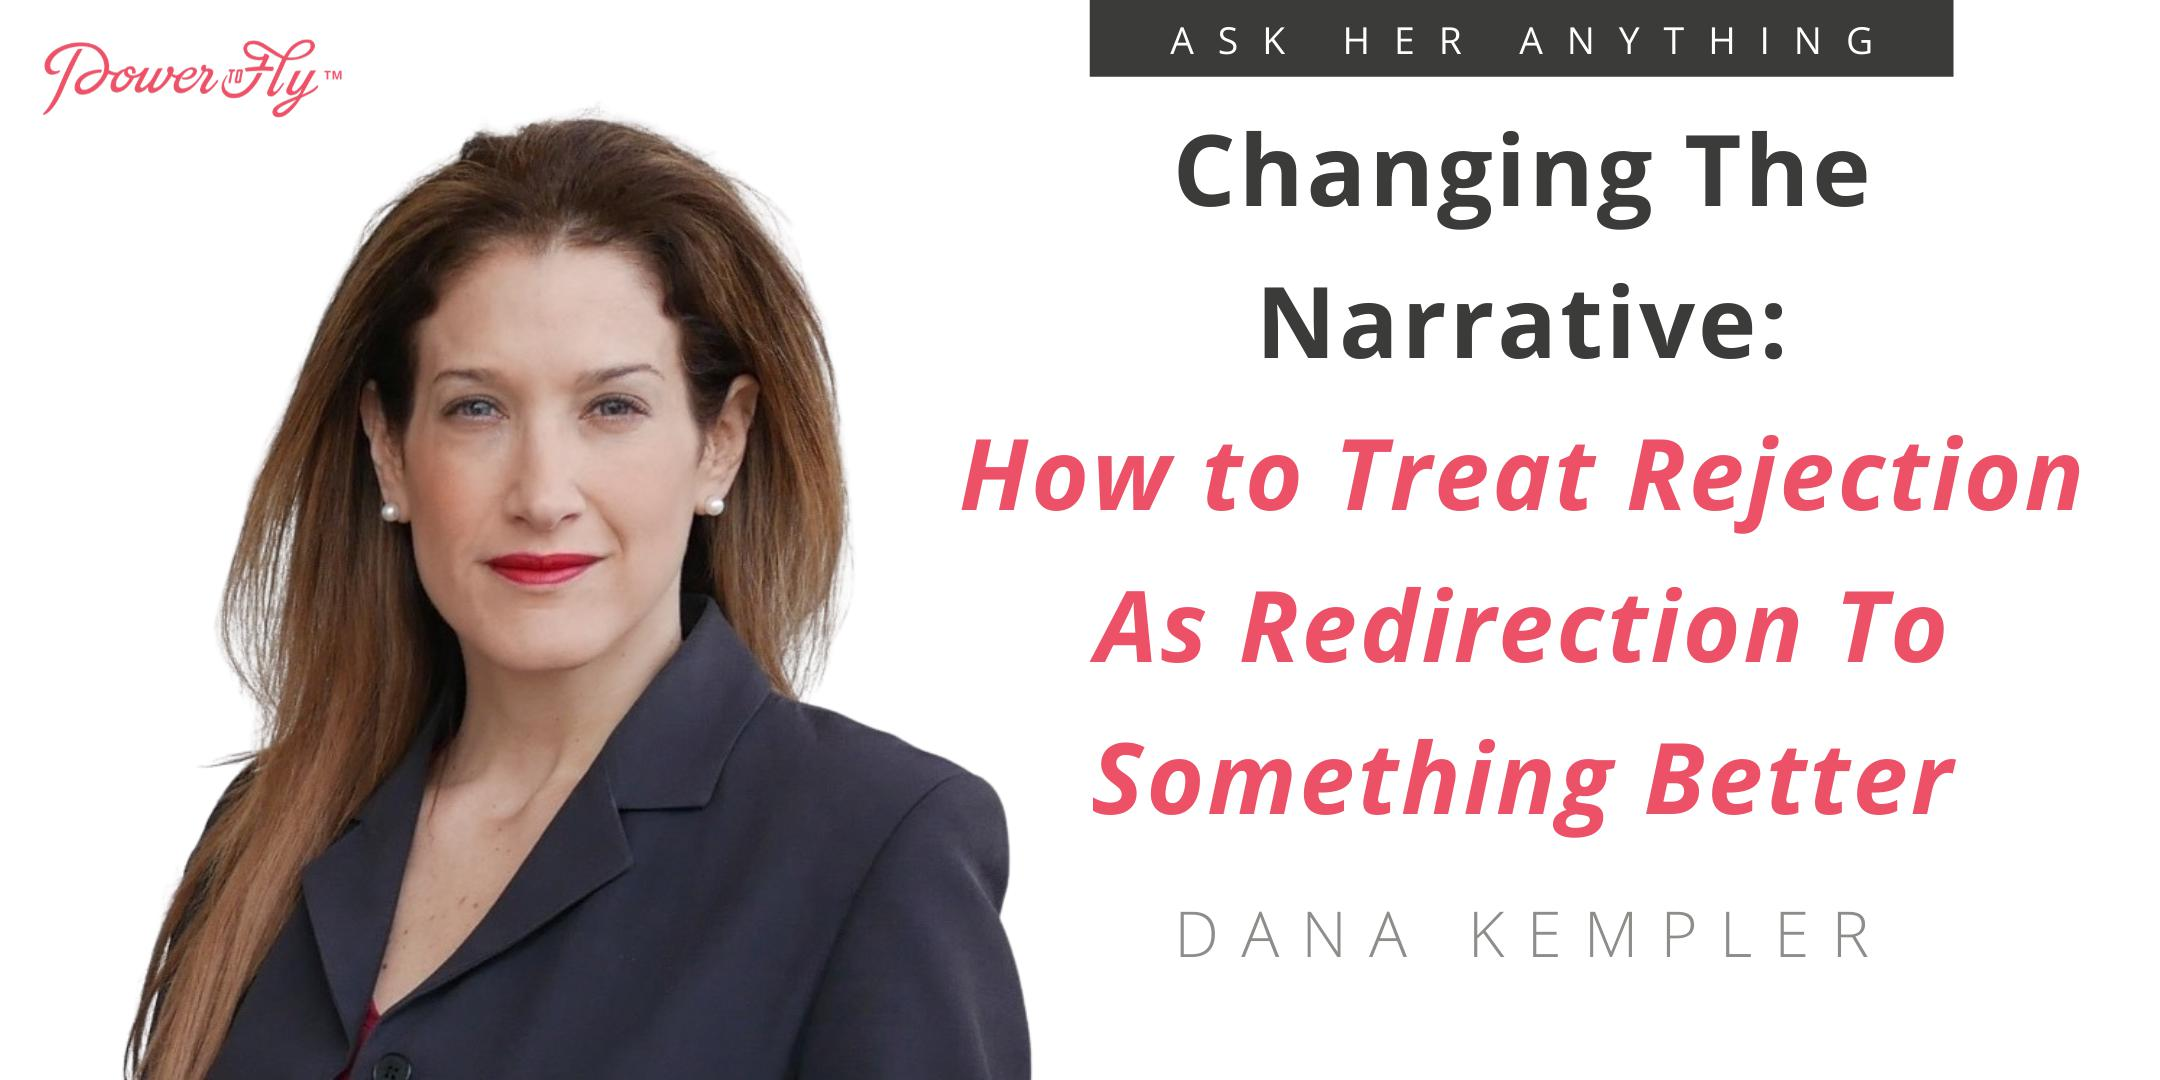 Changing The Narrative: How To Treat Rejection As Redirection To Something Better